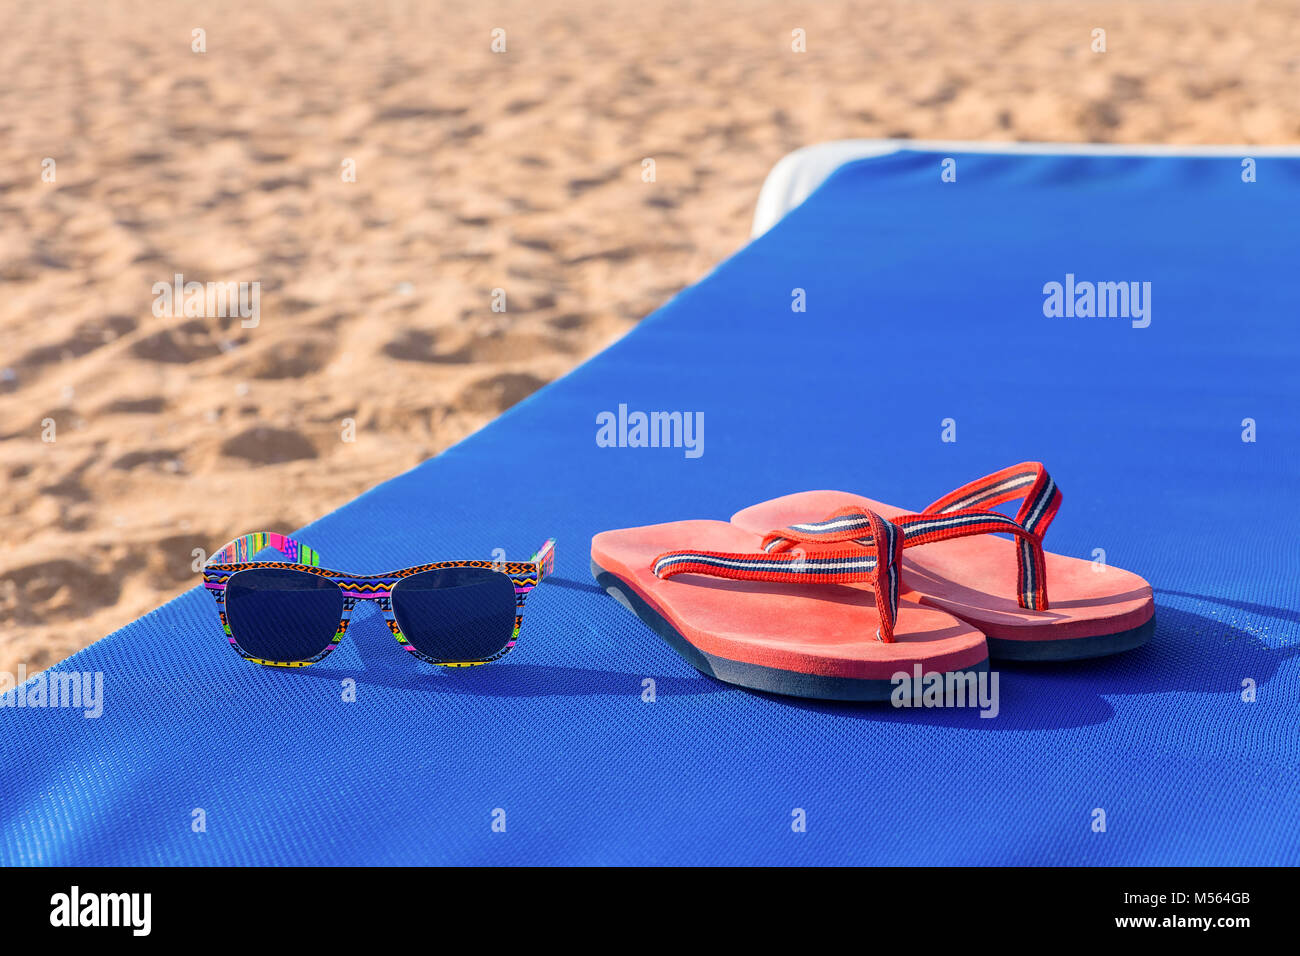 Slippers and sunglasses on sunbed at beach - Stock Image